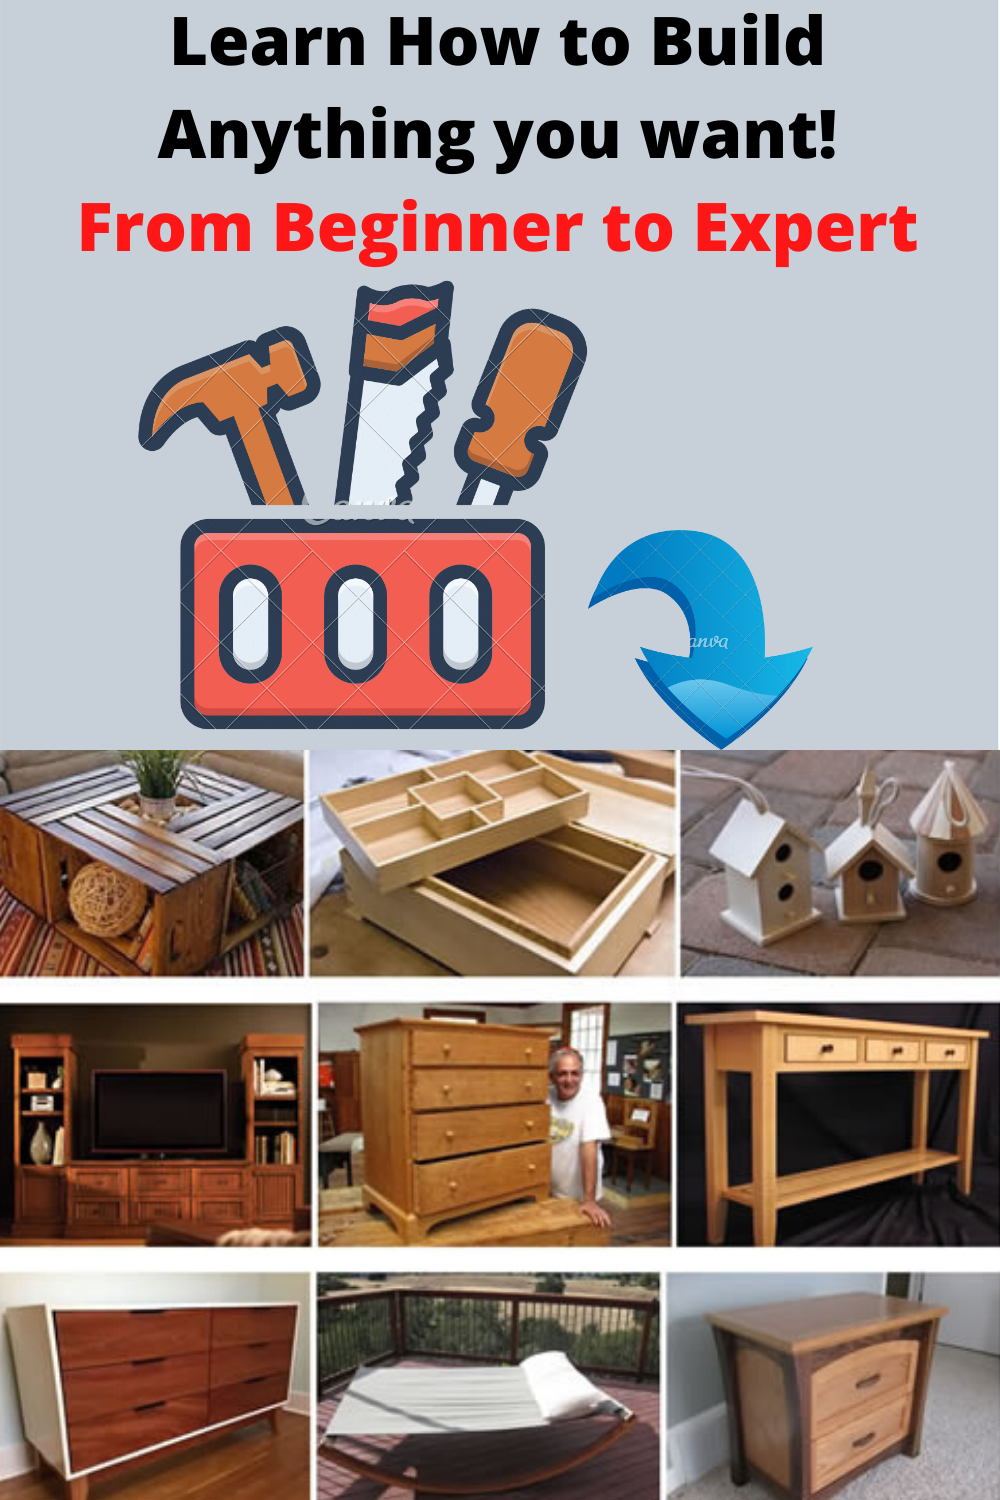 Whether you're an aspiring fine woodworker or you just enjoy watching a craftsman at work, we have you covered. #woodworkingtechniques #easywoodworkingprojects #diywoodworkingideas #diyfarmhousedecor